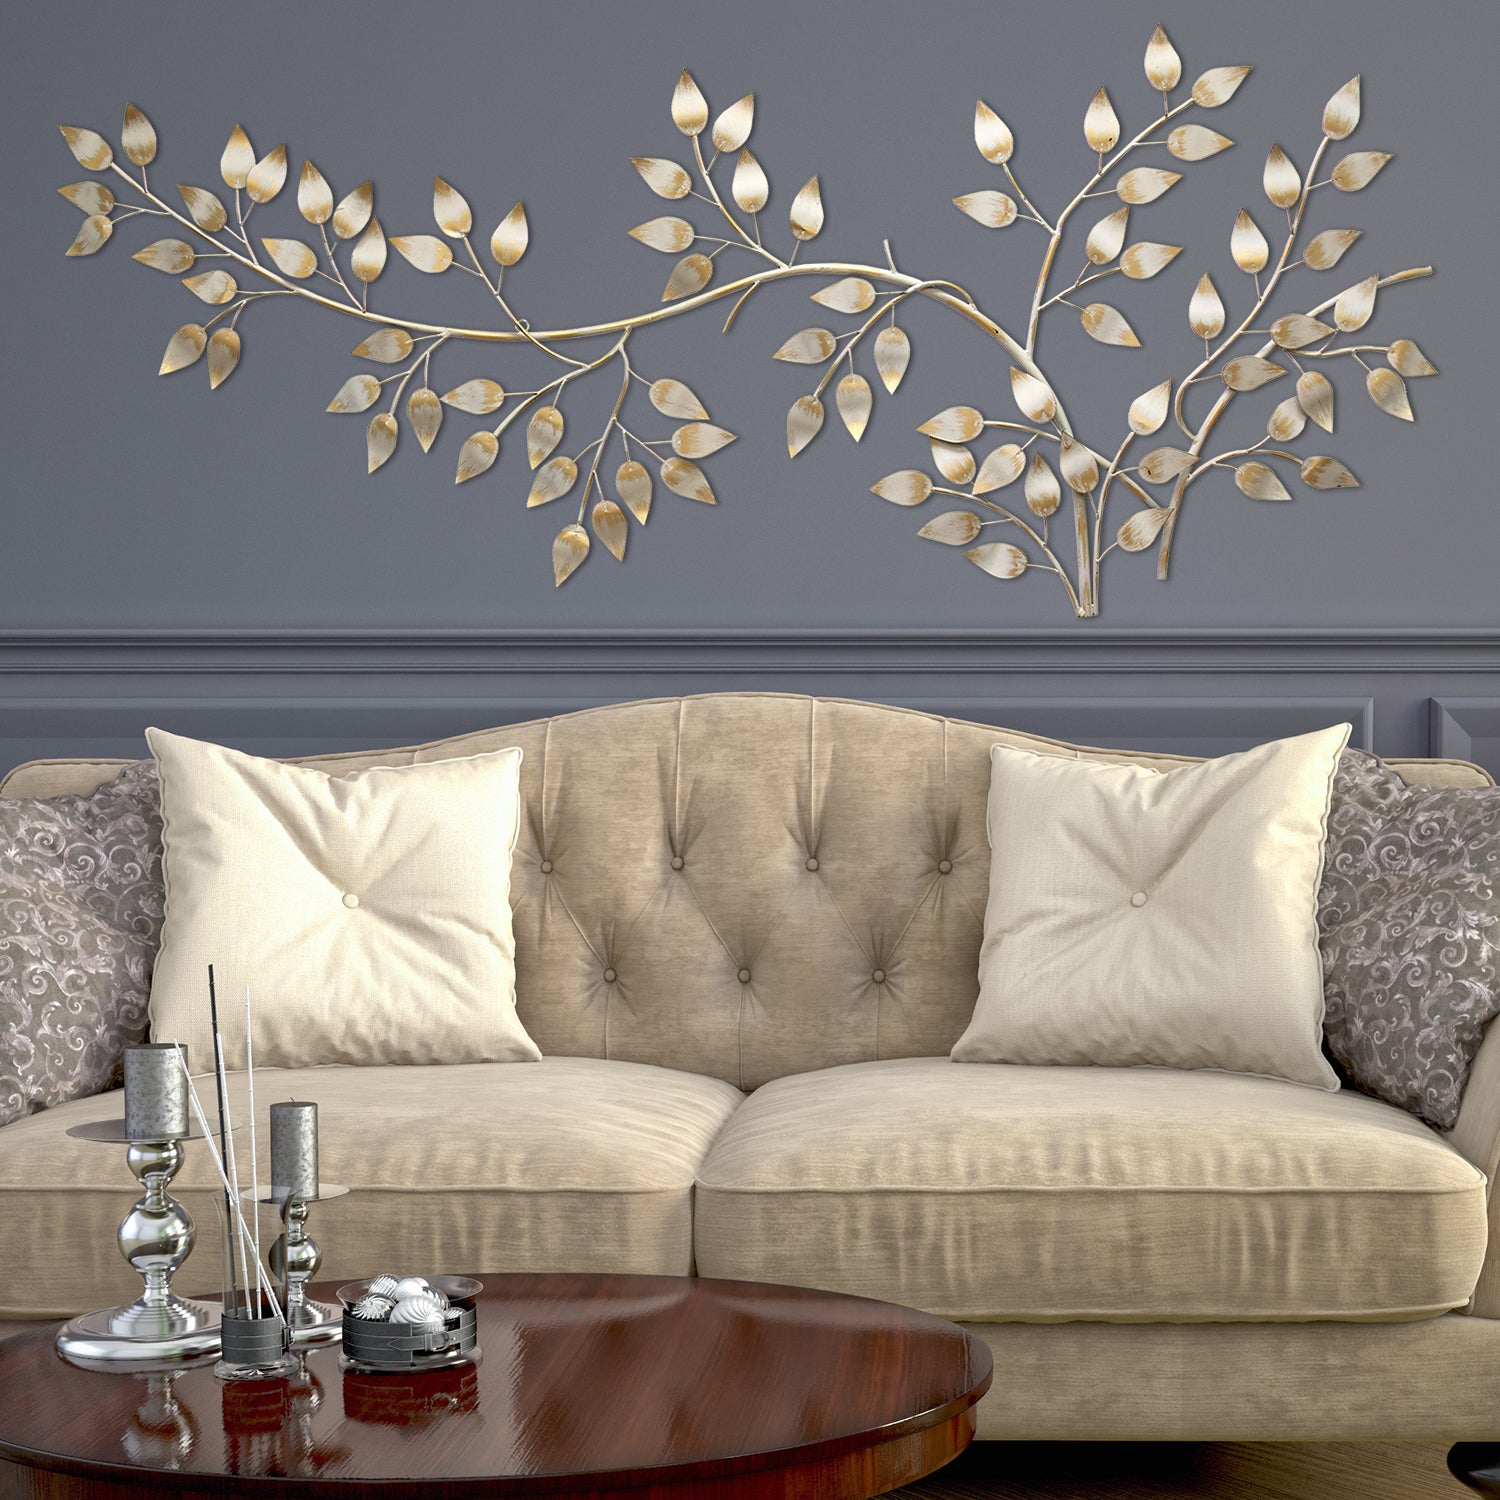 Stratton Home Decor Brushed Gold Flowing Leaves Wall Decor - Free Shipping  Today - Overstock.com - 18198454